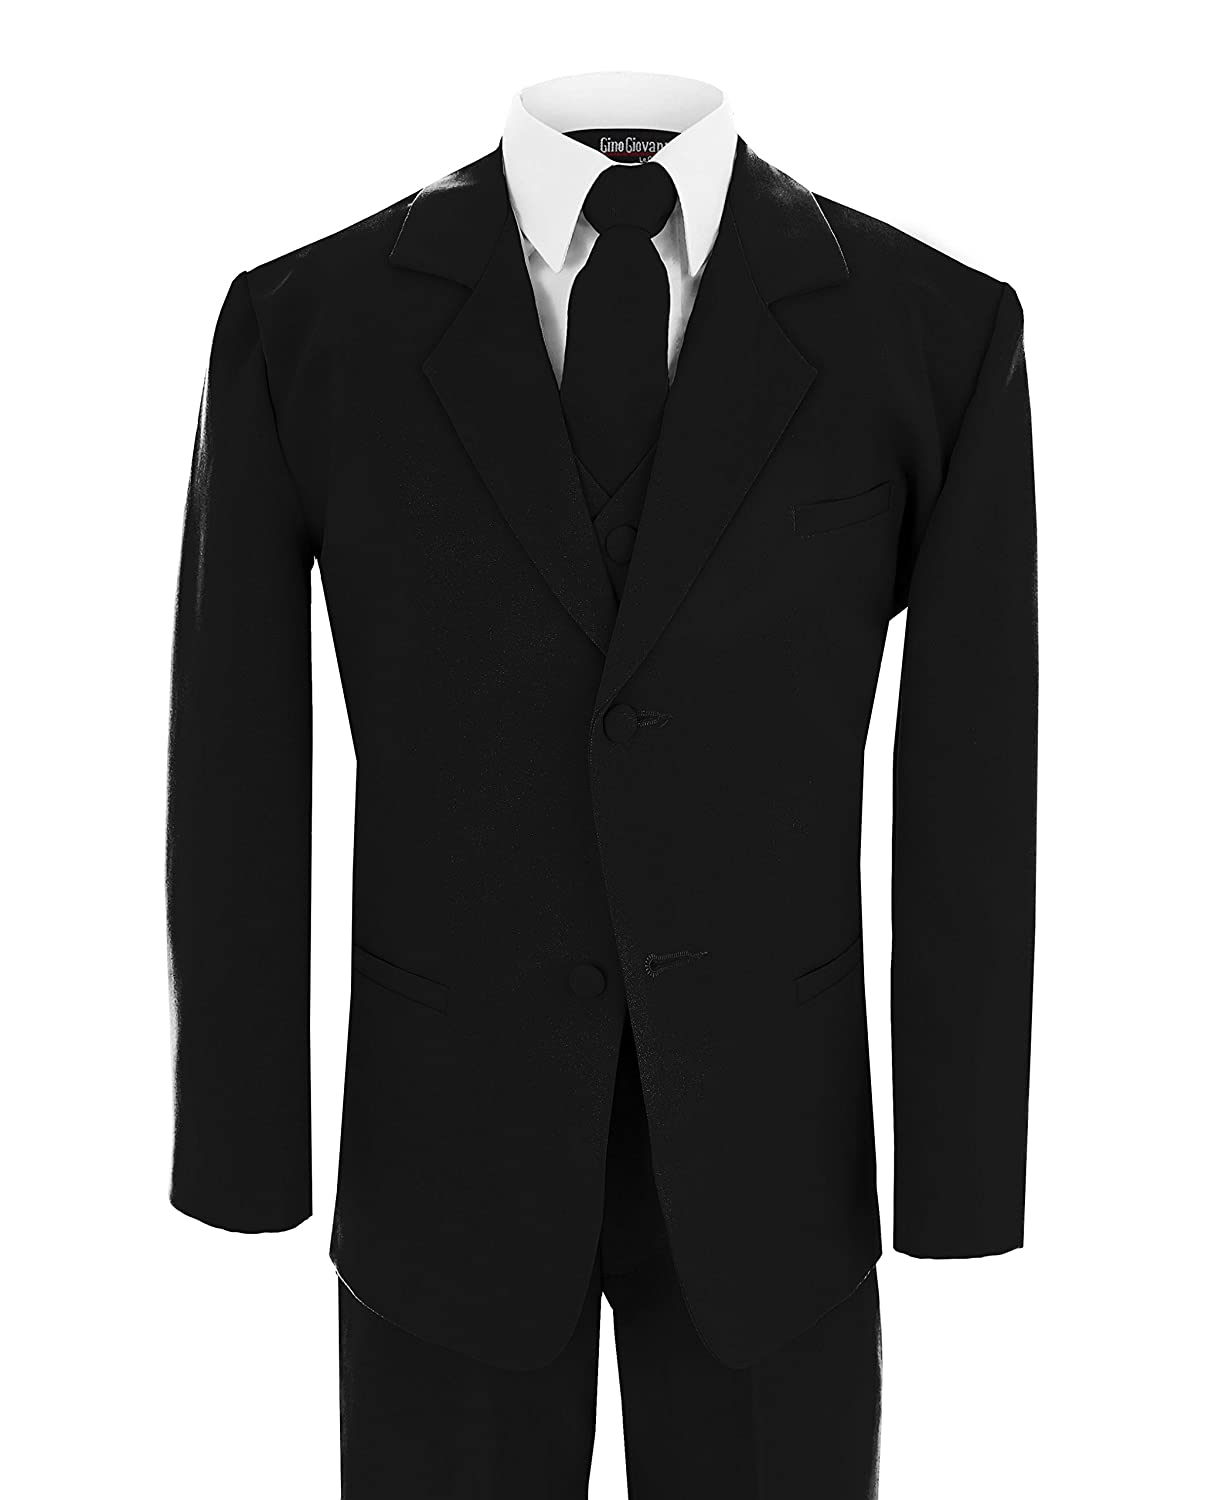 Gino Giovanni Wedding Toddler Boy Formal Suit Black Size 3 / 3t (3T)